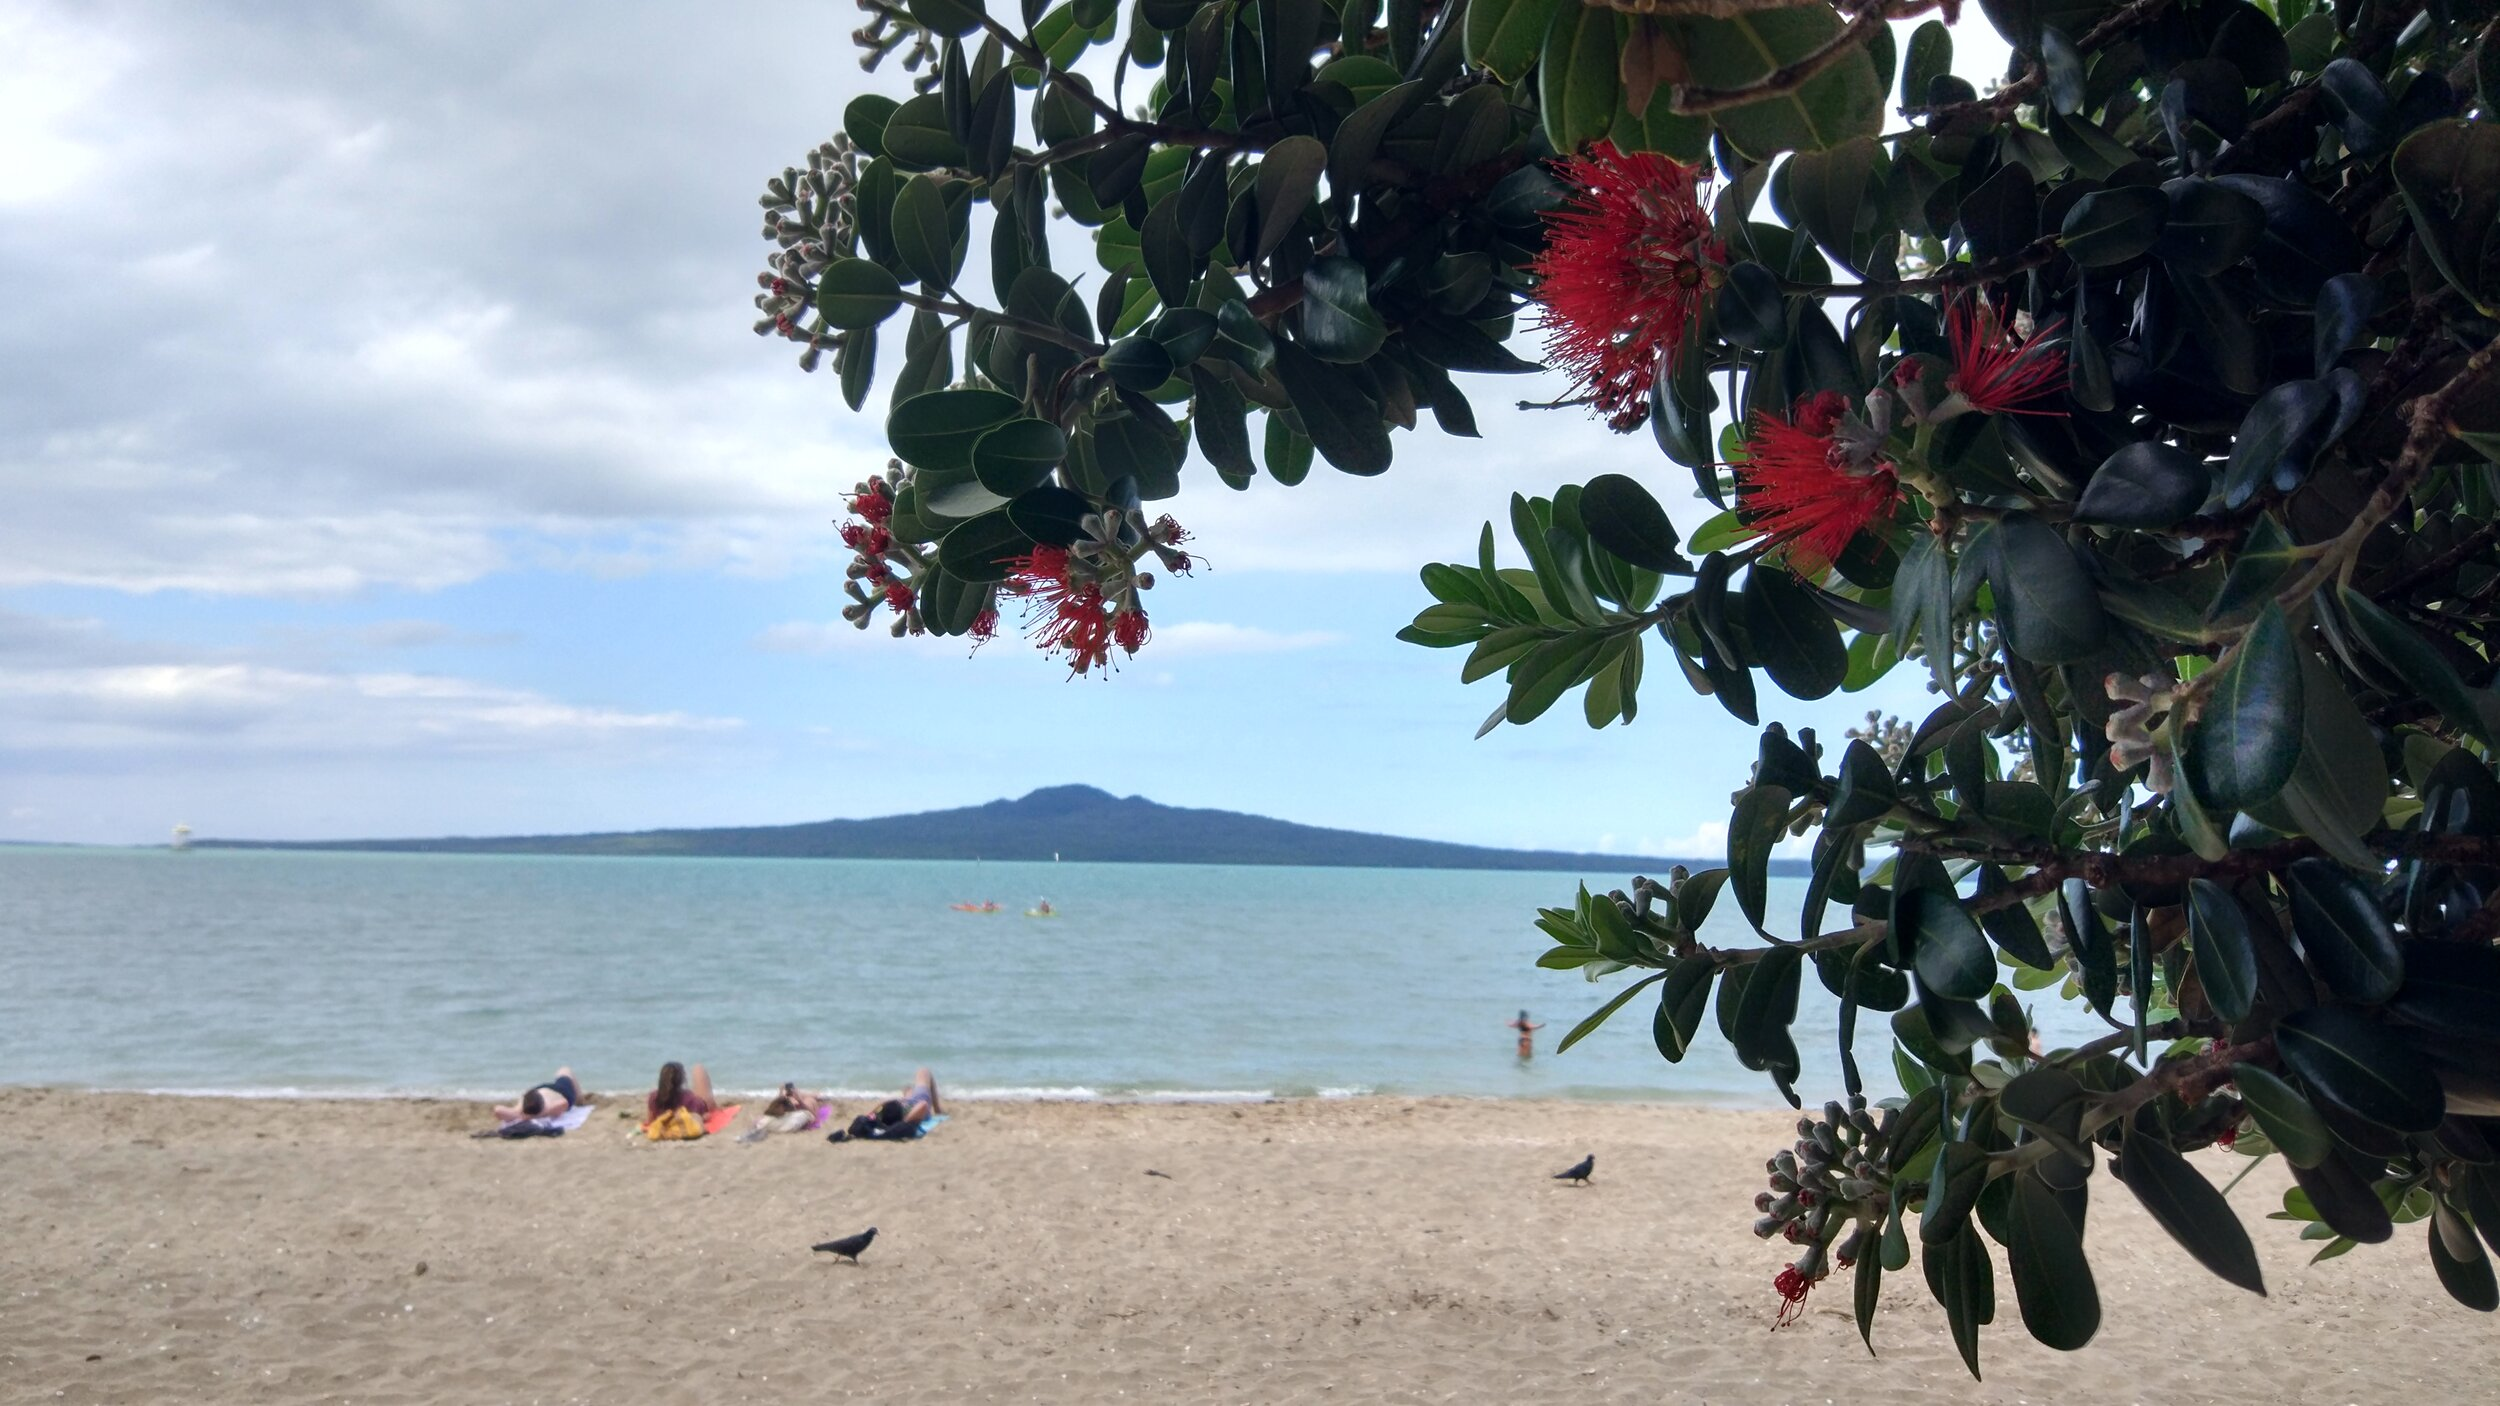 relaxing on mission bay beach Auckland